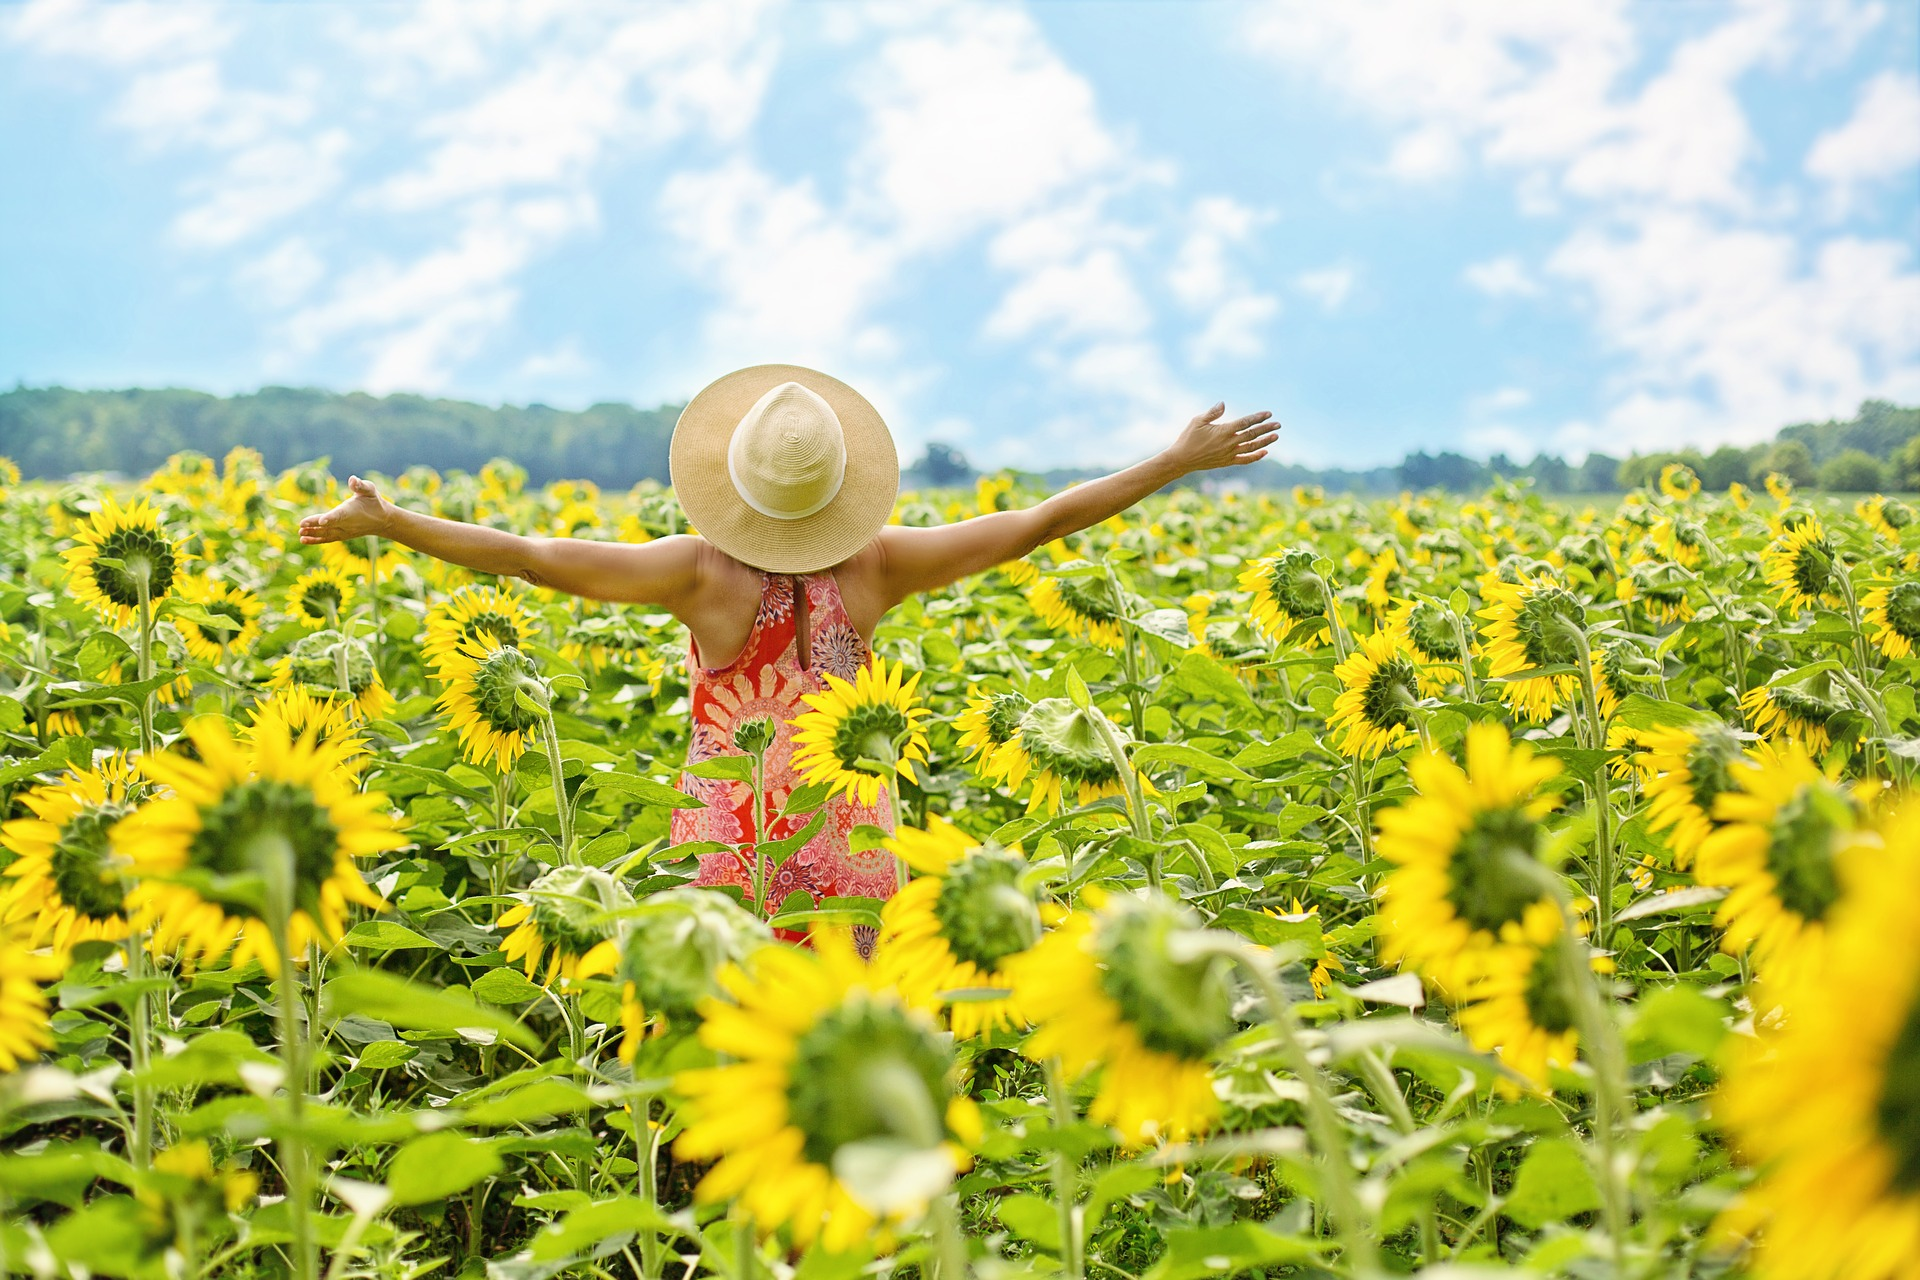 A woman standing in sunflower field-where to live in retirement